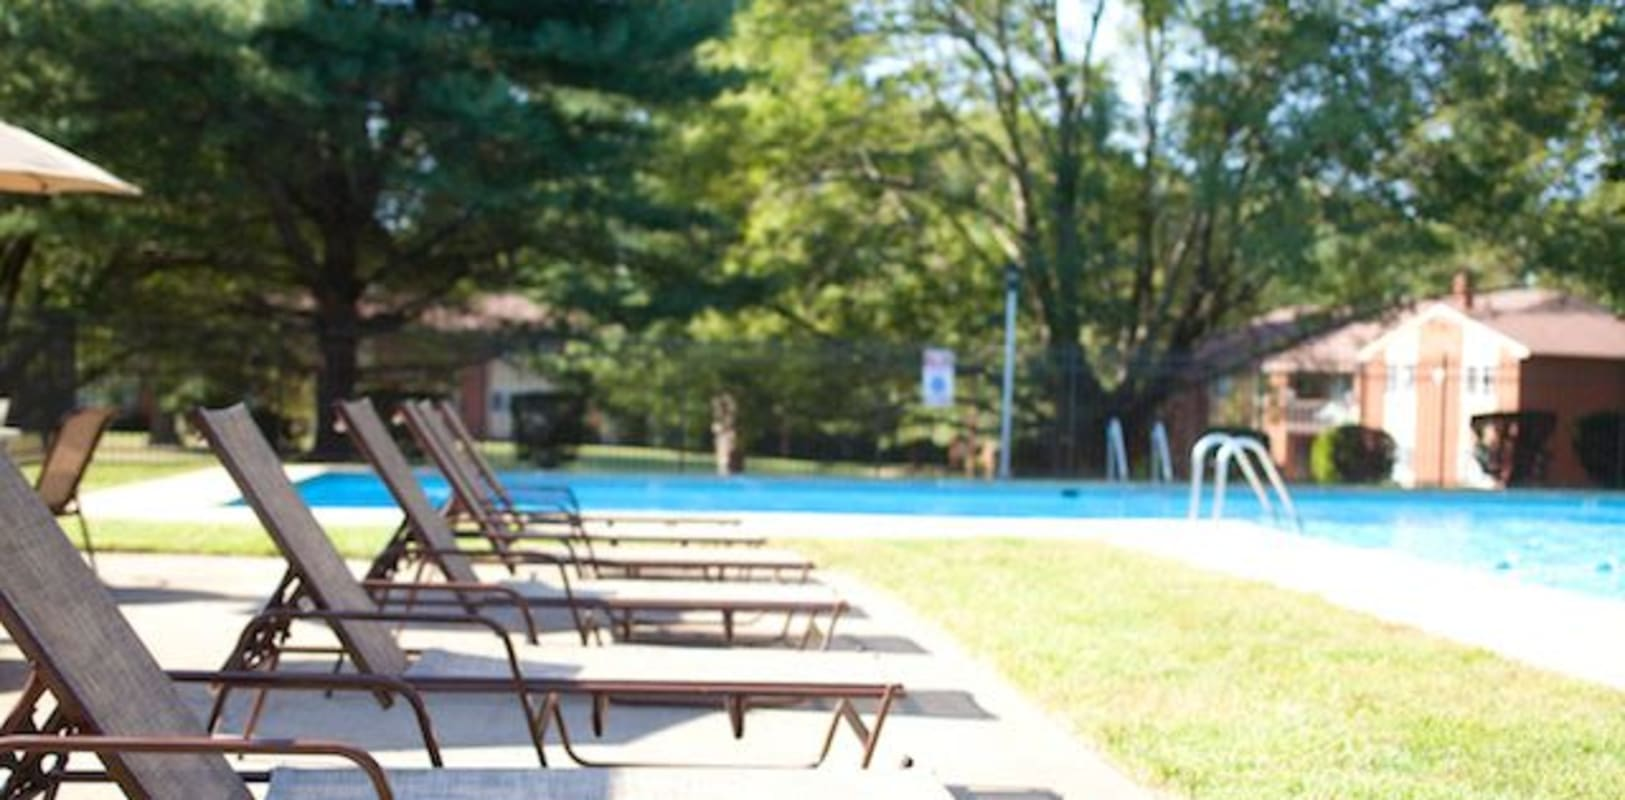 Poolside lounge at Eastgate Apartments in Ewing, New Jersey